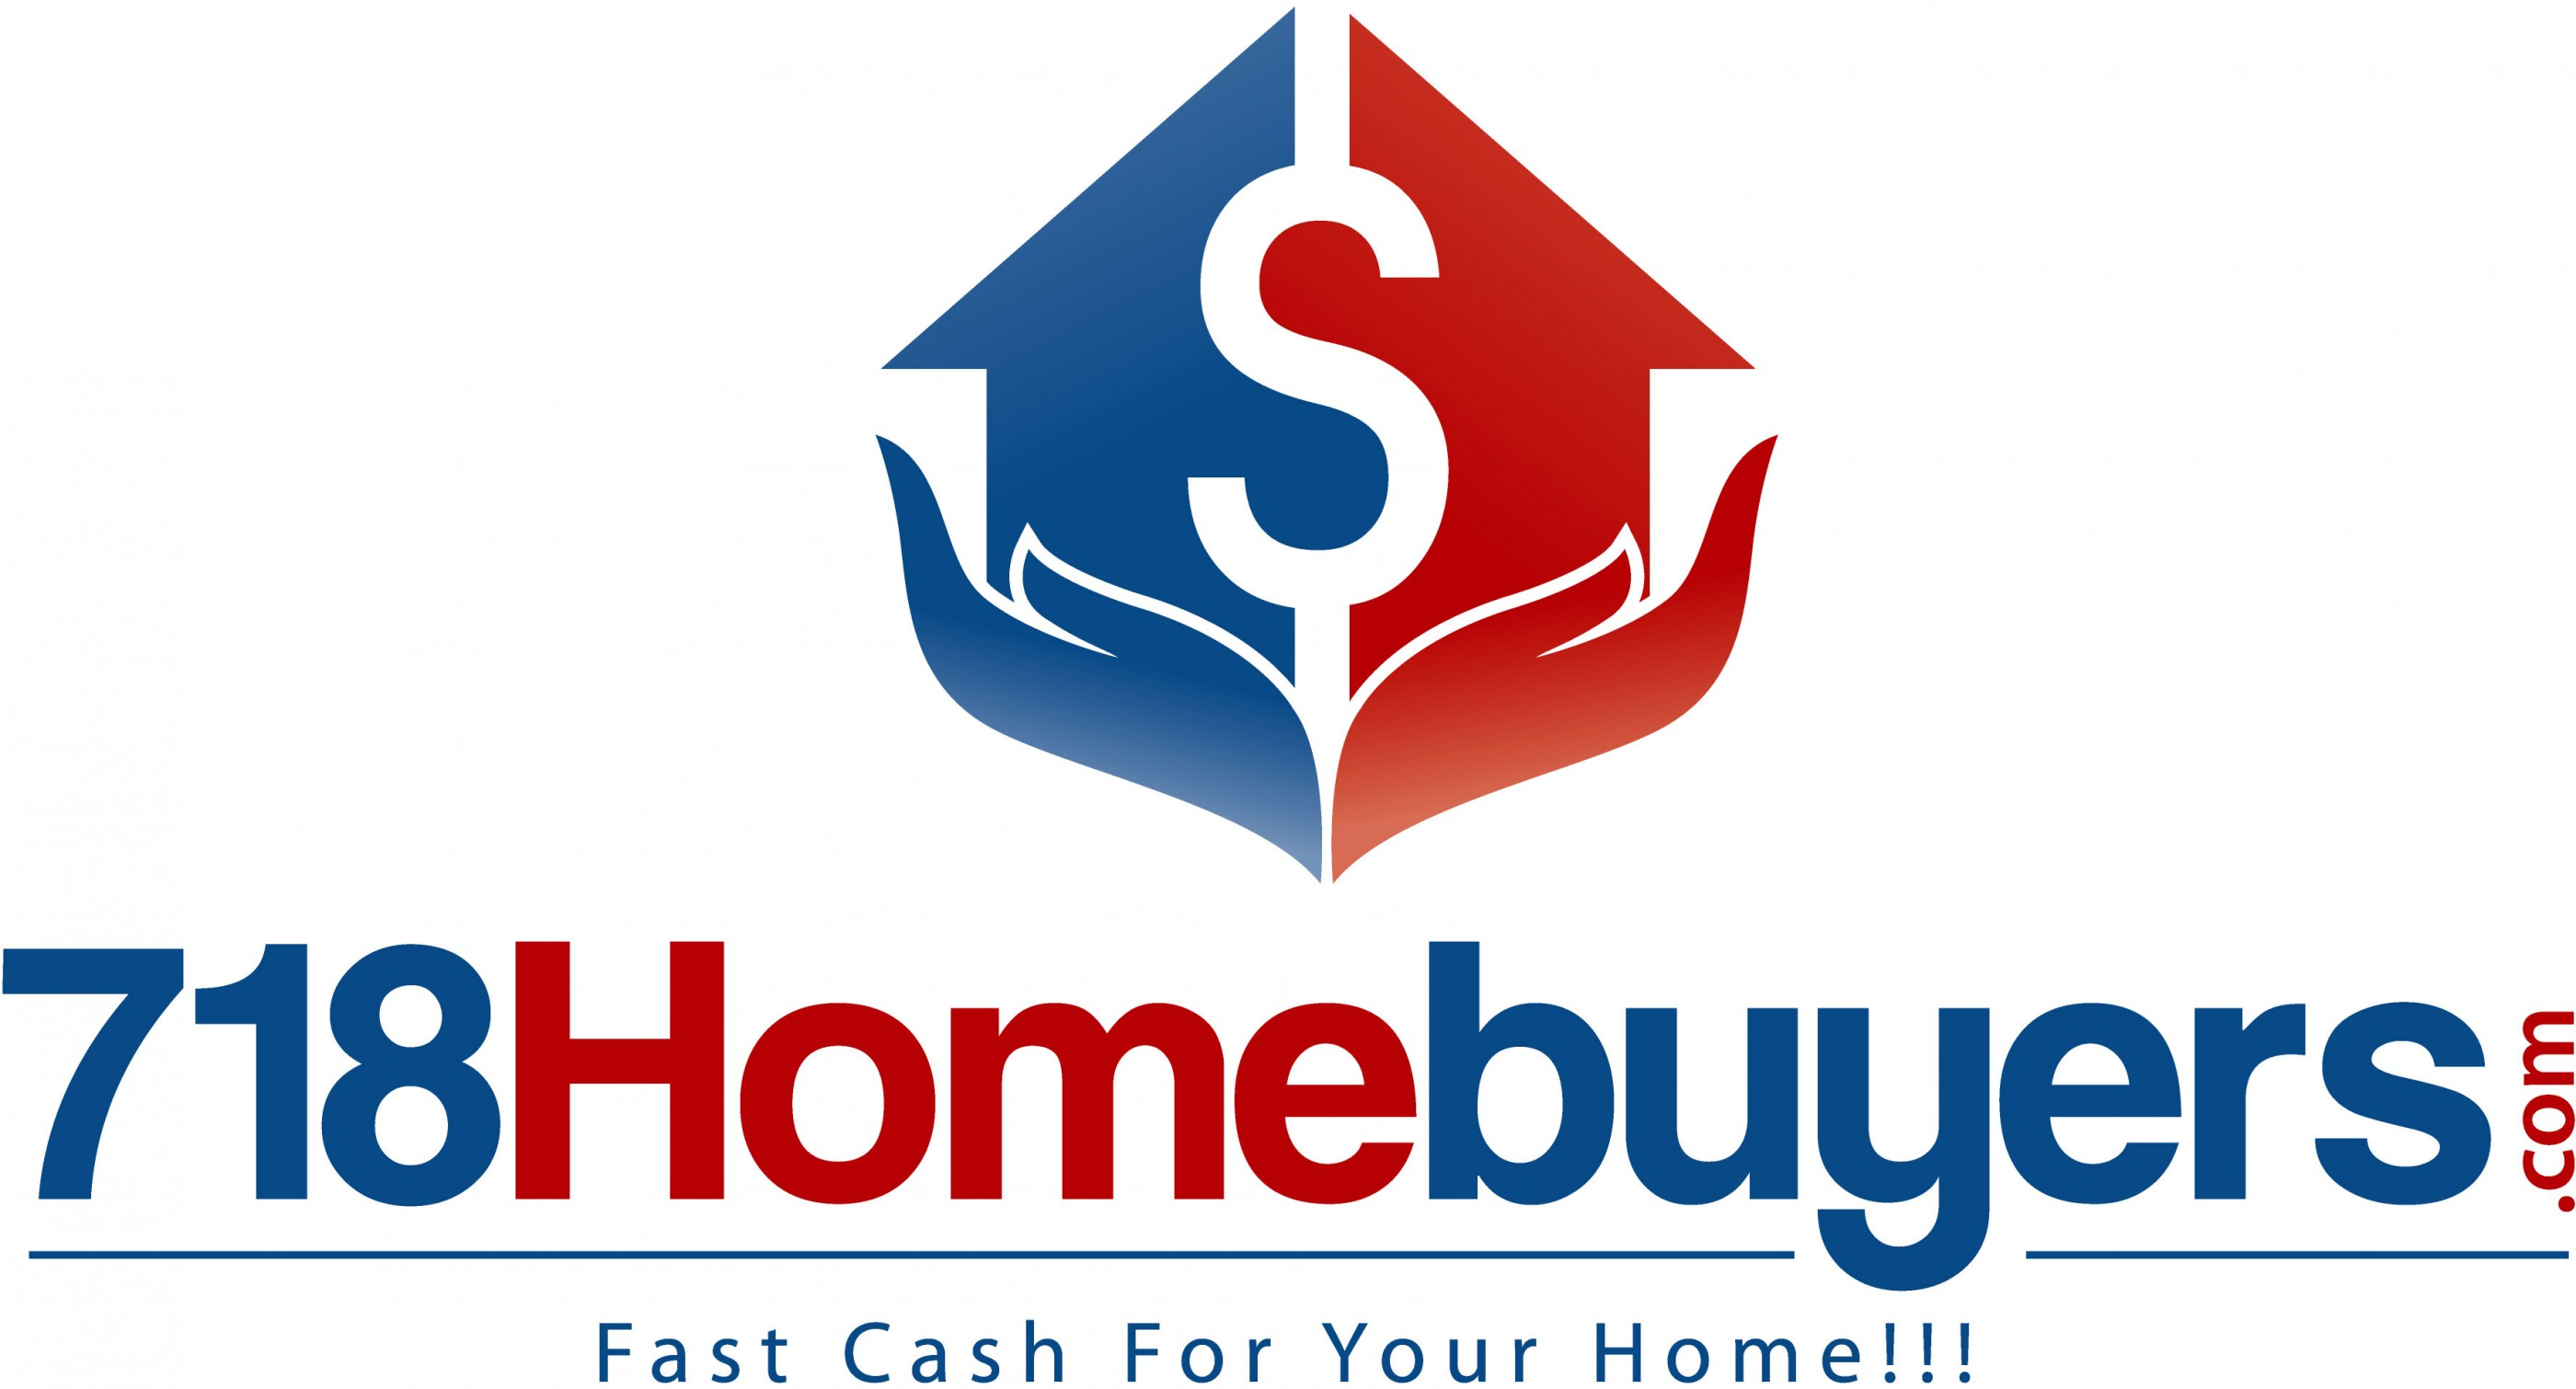 718Homebuyers.com logo